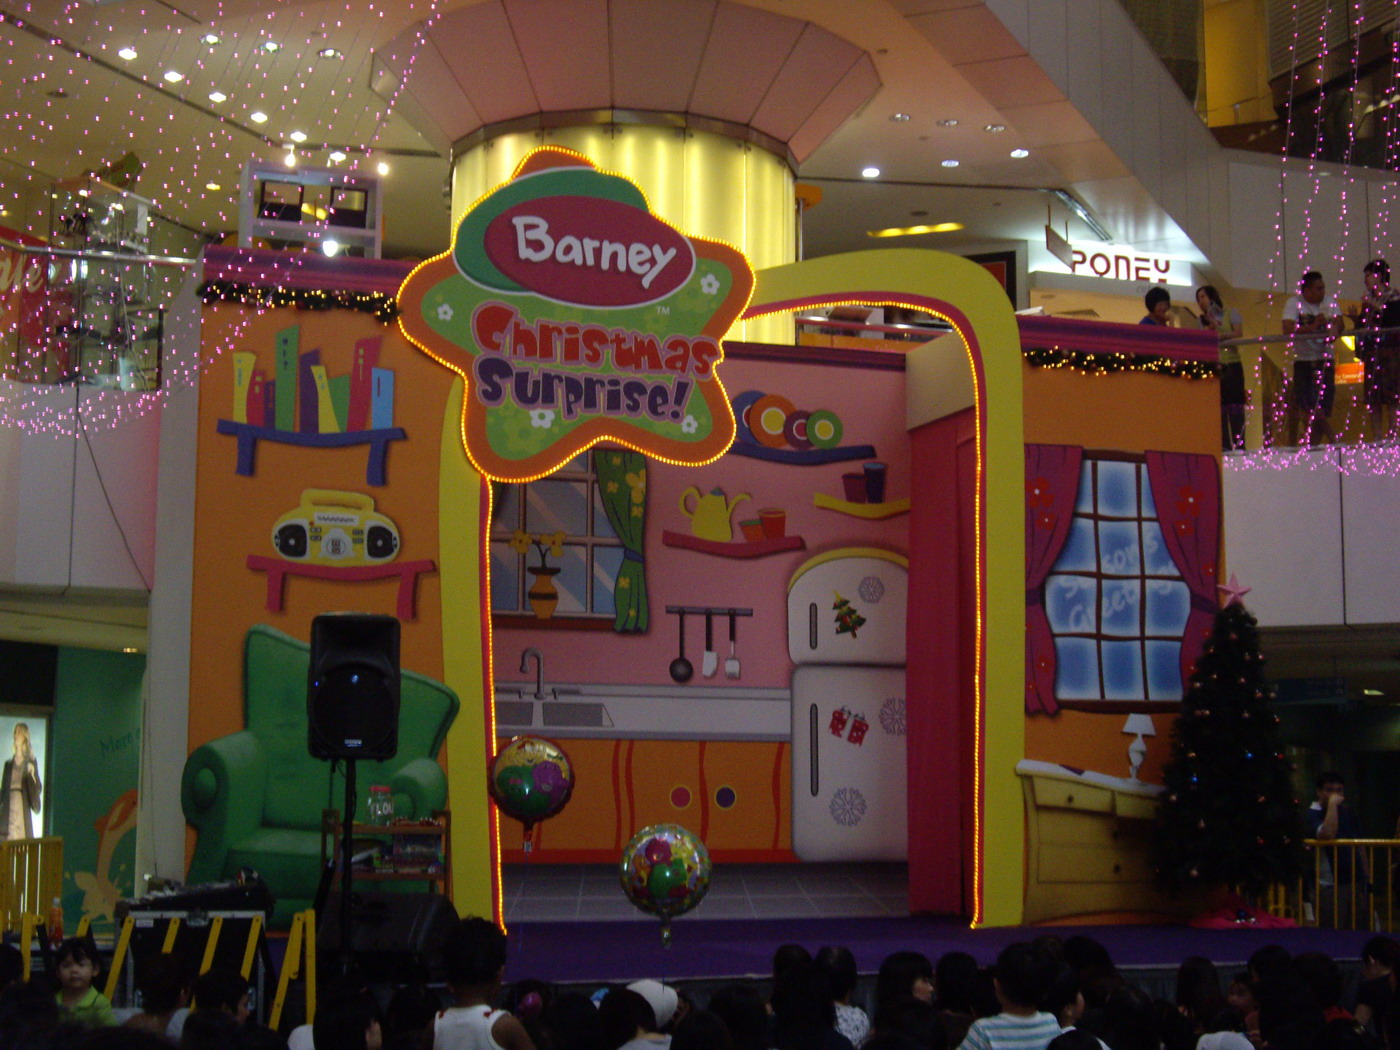 Somewhere In Singapore Blog: Barney Christmas Surprise